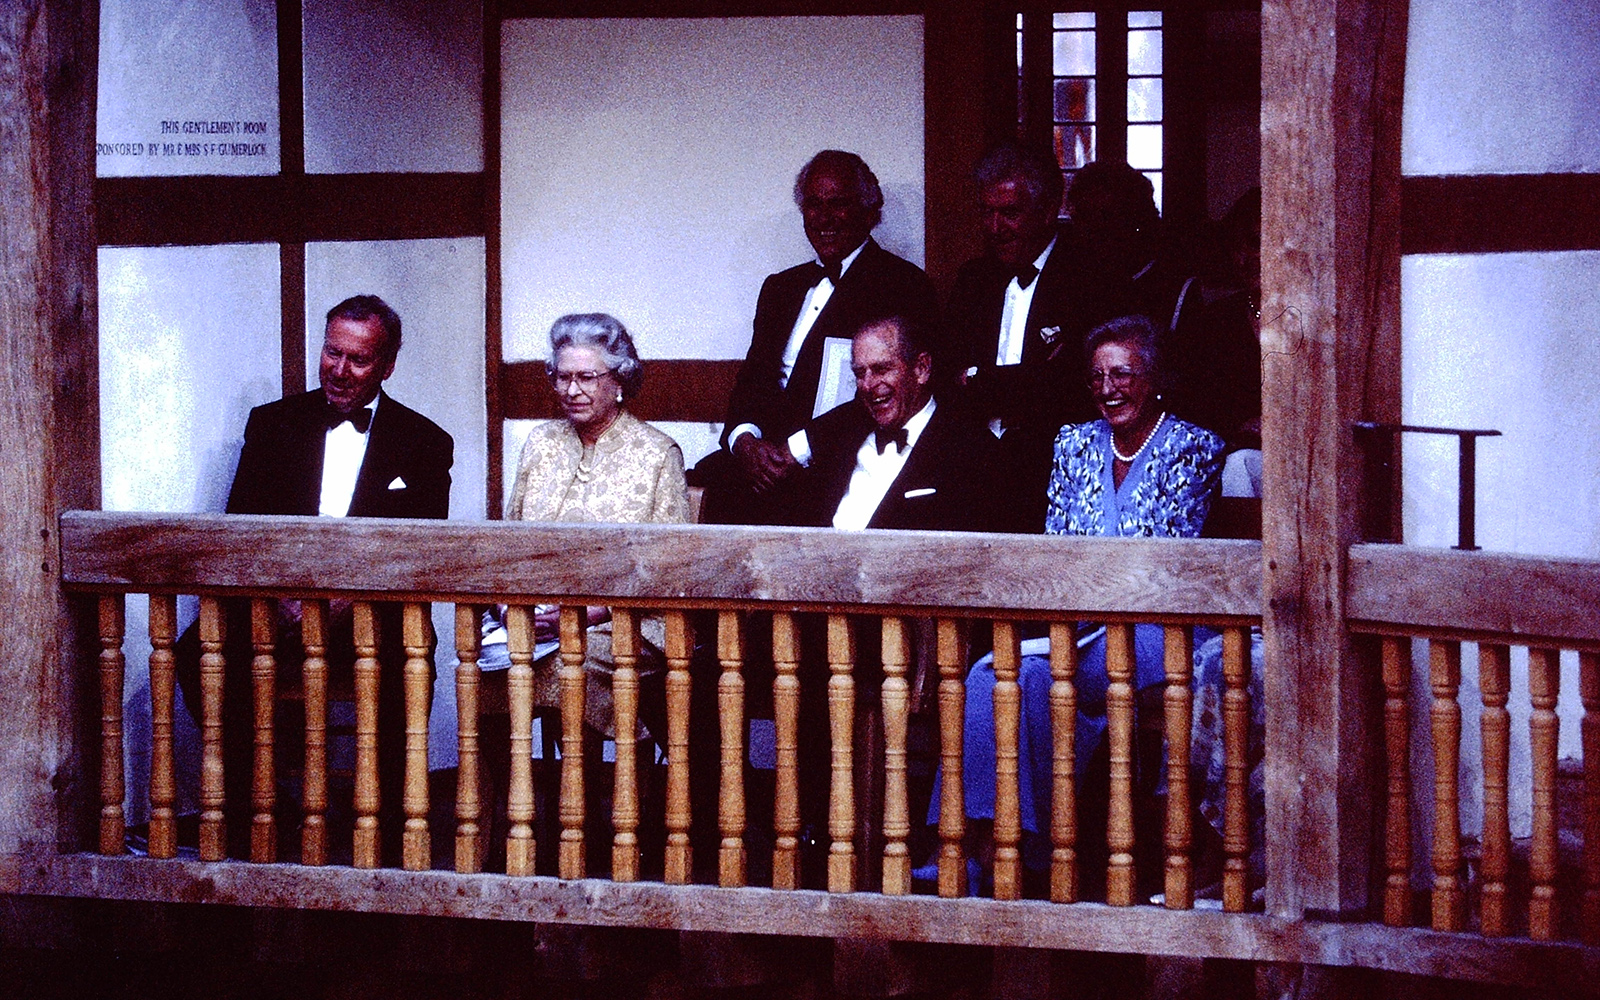 Her Majesty the Queen watches a performance in the Gentleman's Box of the Globe Theatre.